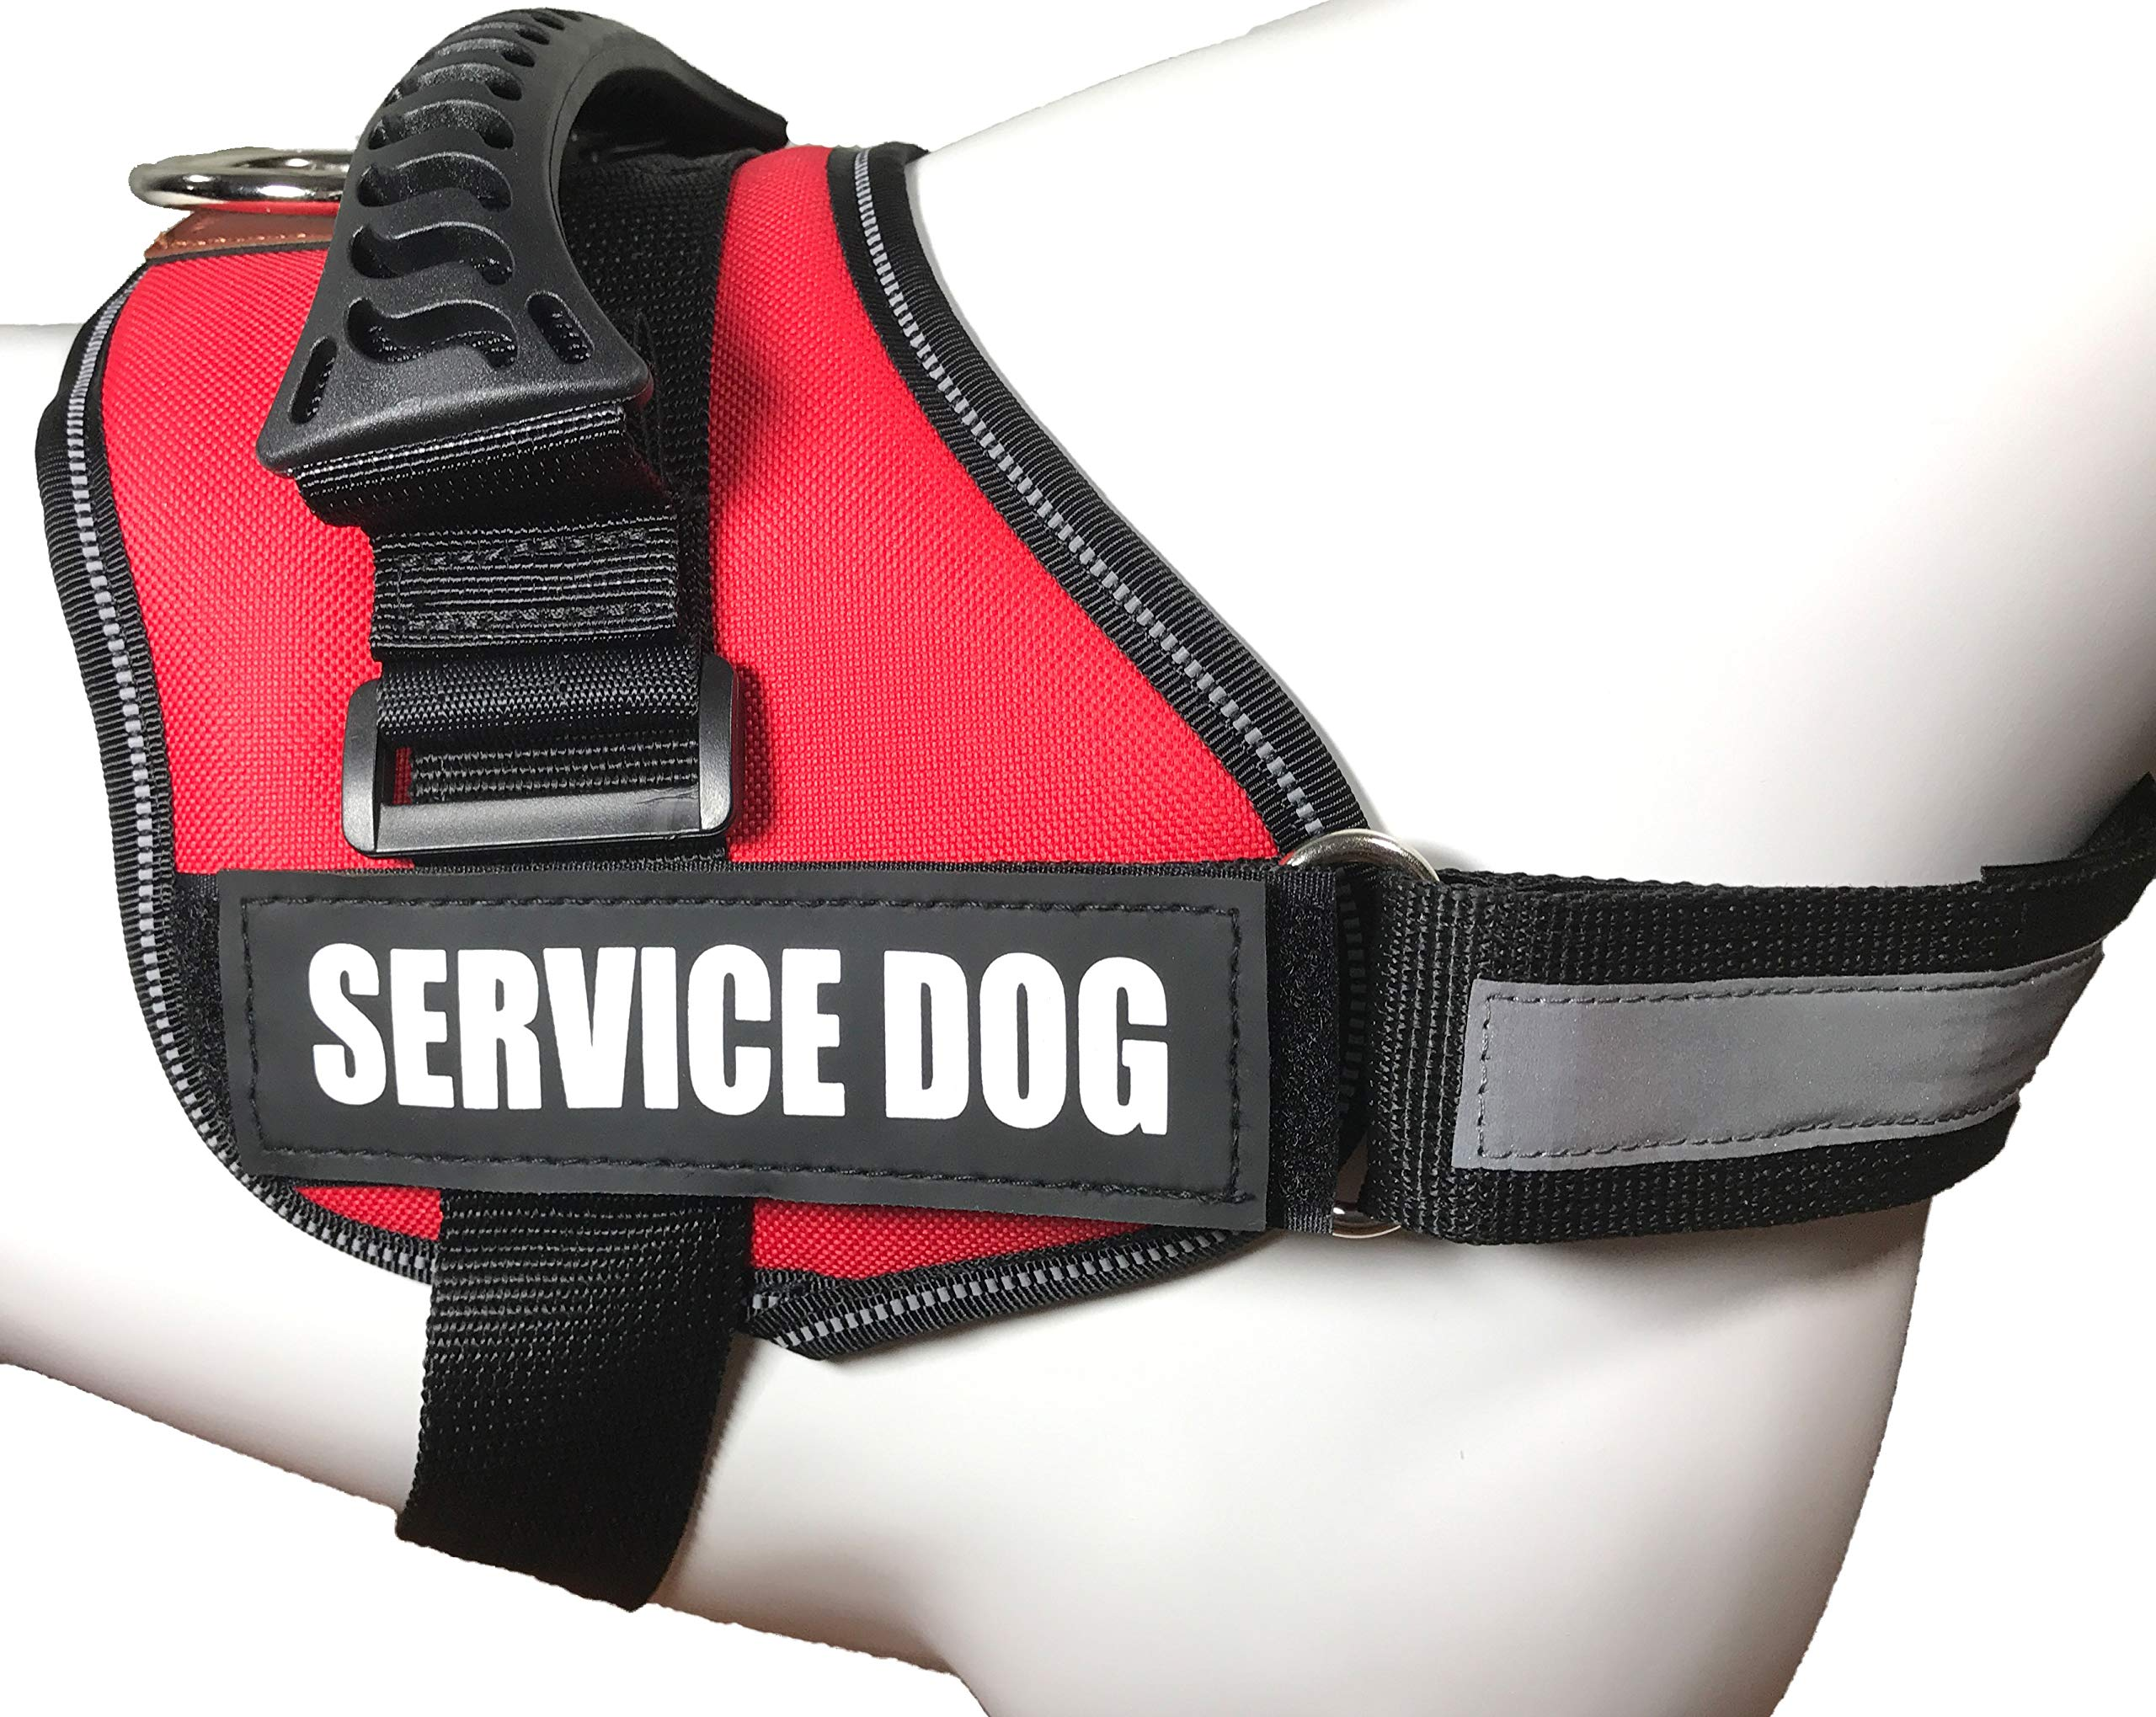 ALBCORP Service Dog Vest Harness - Reflective - Woven Polyester & Nylon, Comfy Mesh Padding, Medium, RED